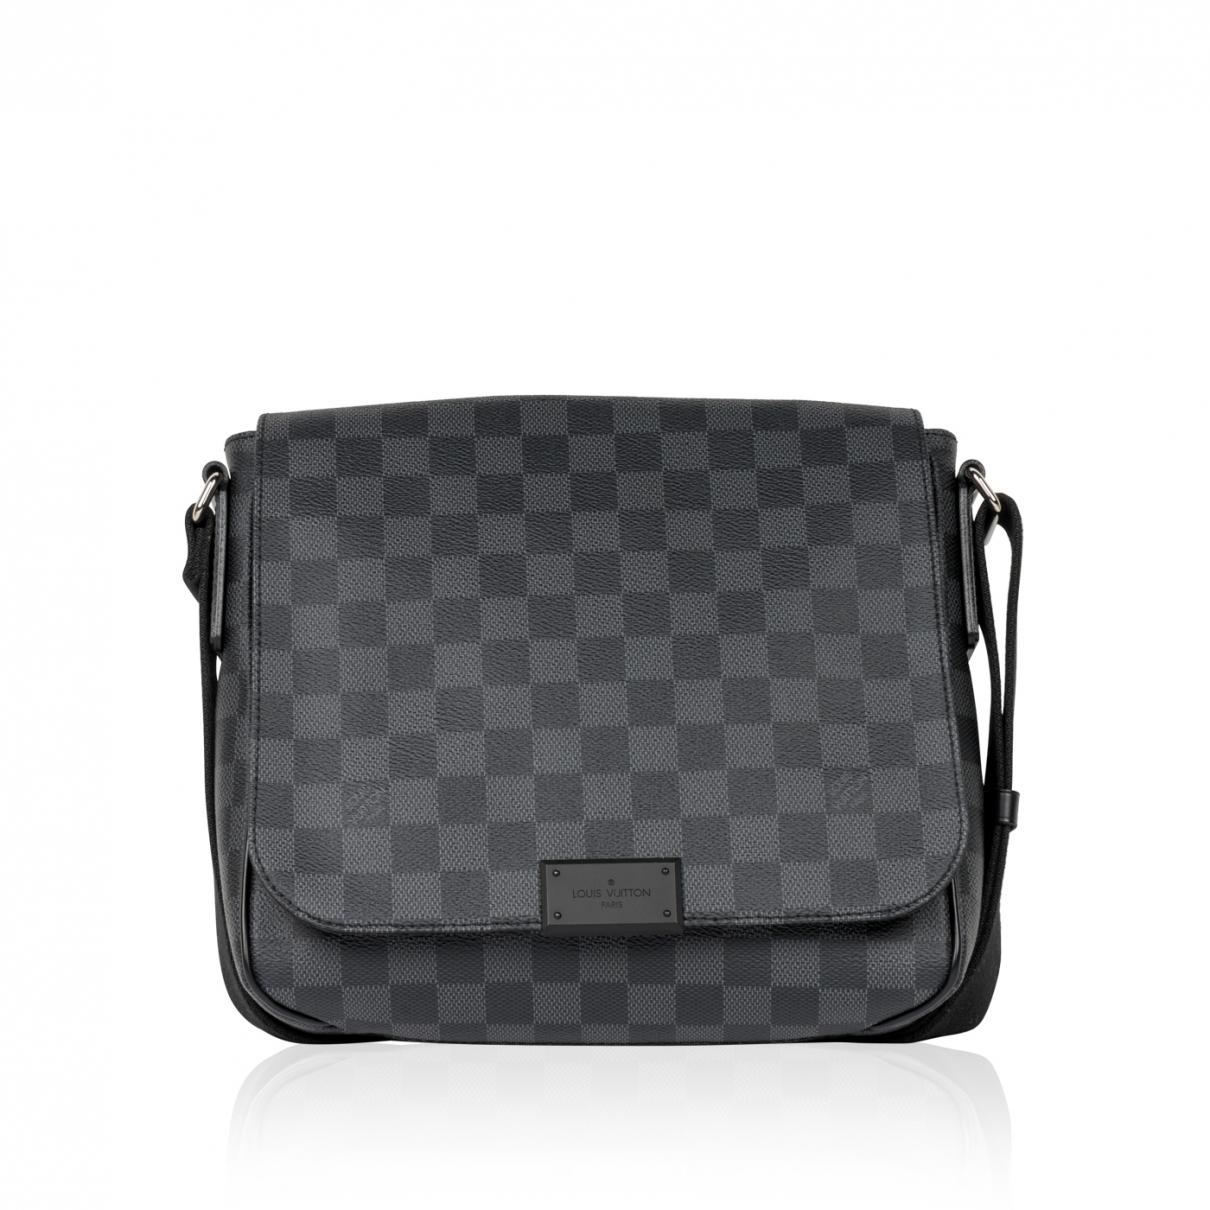 3bc189dfcdfd Louis Vuitton - Black Pre-owned Other Cloth Bags for Men - Lyst. View  fullscreen